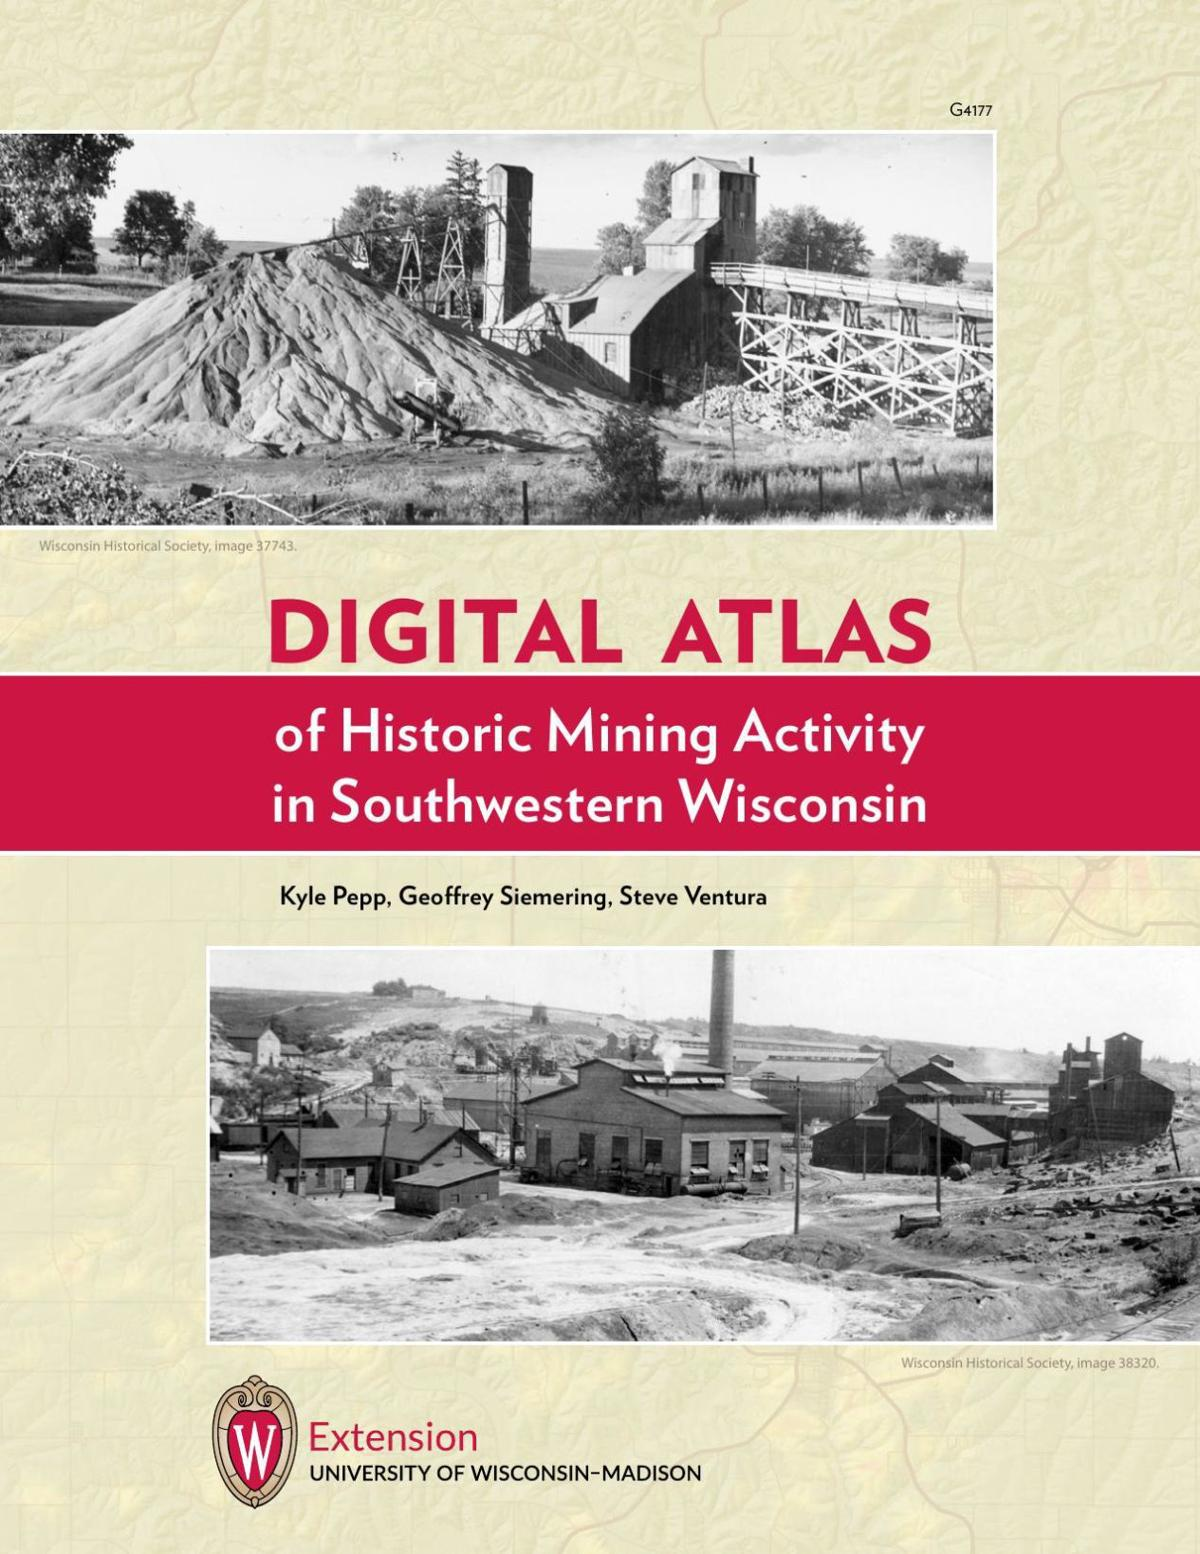 Digital Atlas of Historic Mining Activity in Southwest Wisconsin.pdf (11864.03 KiB)